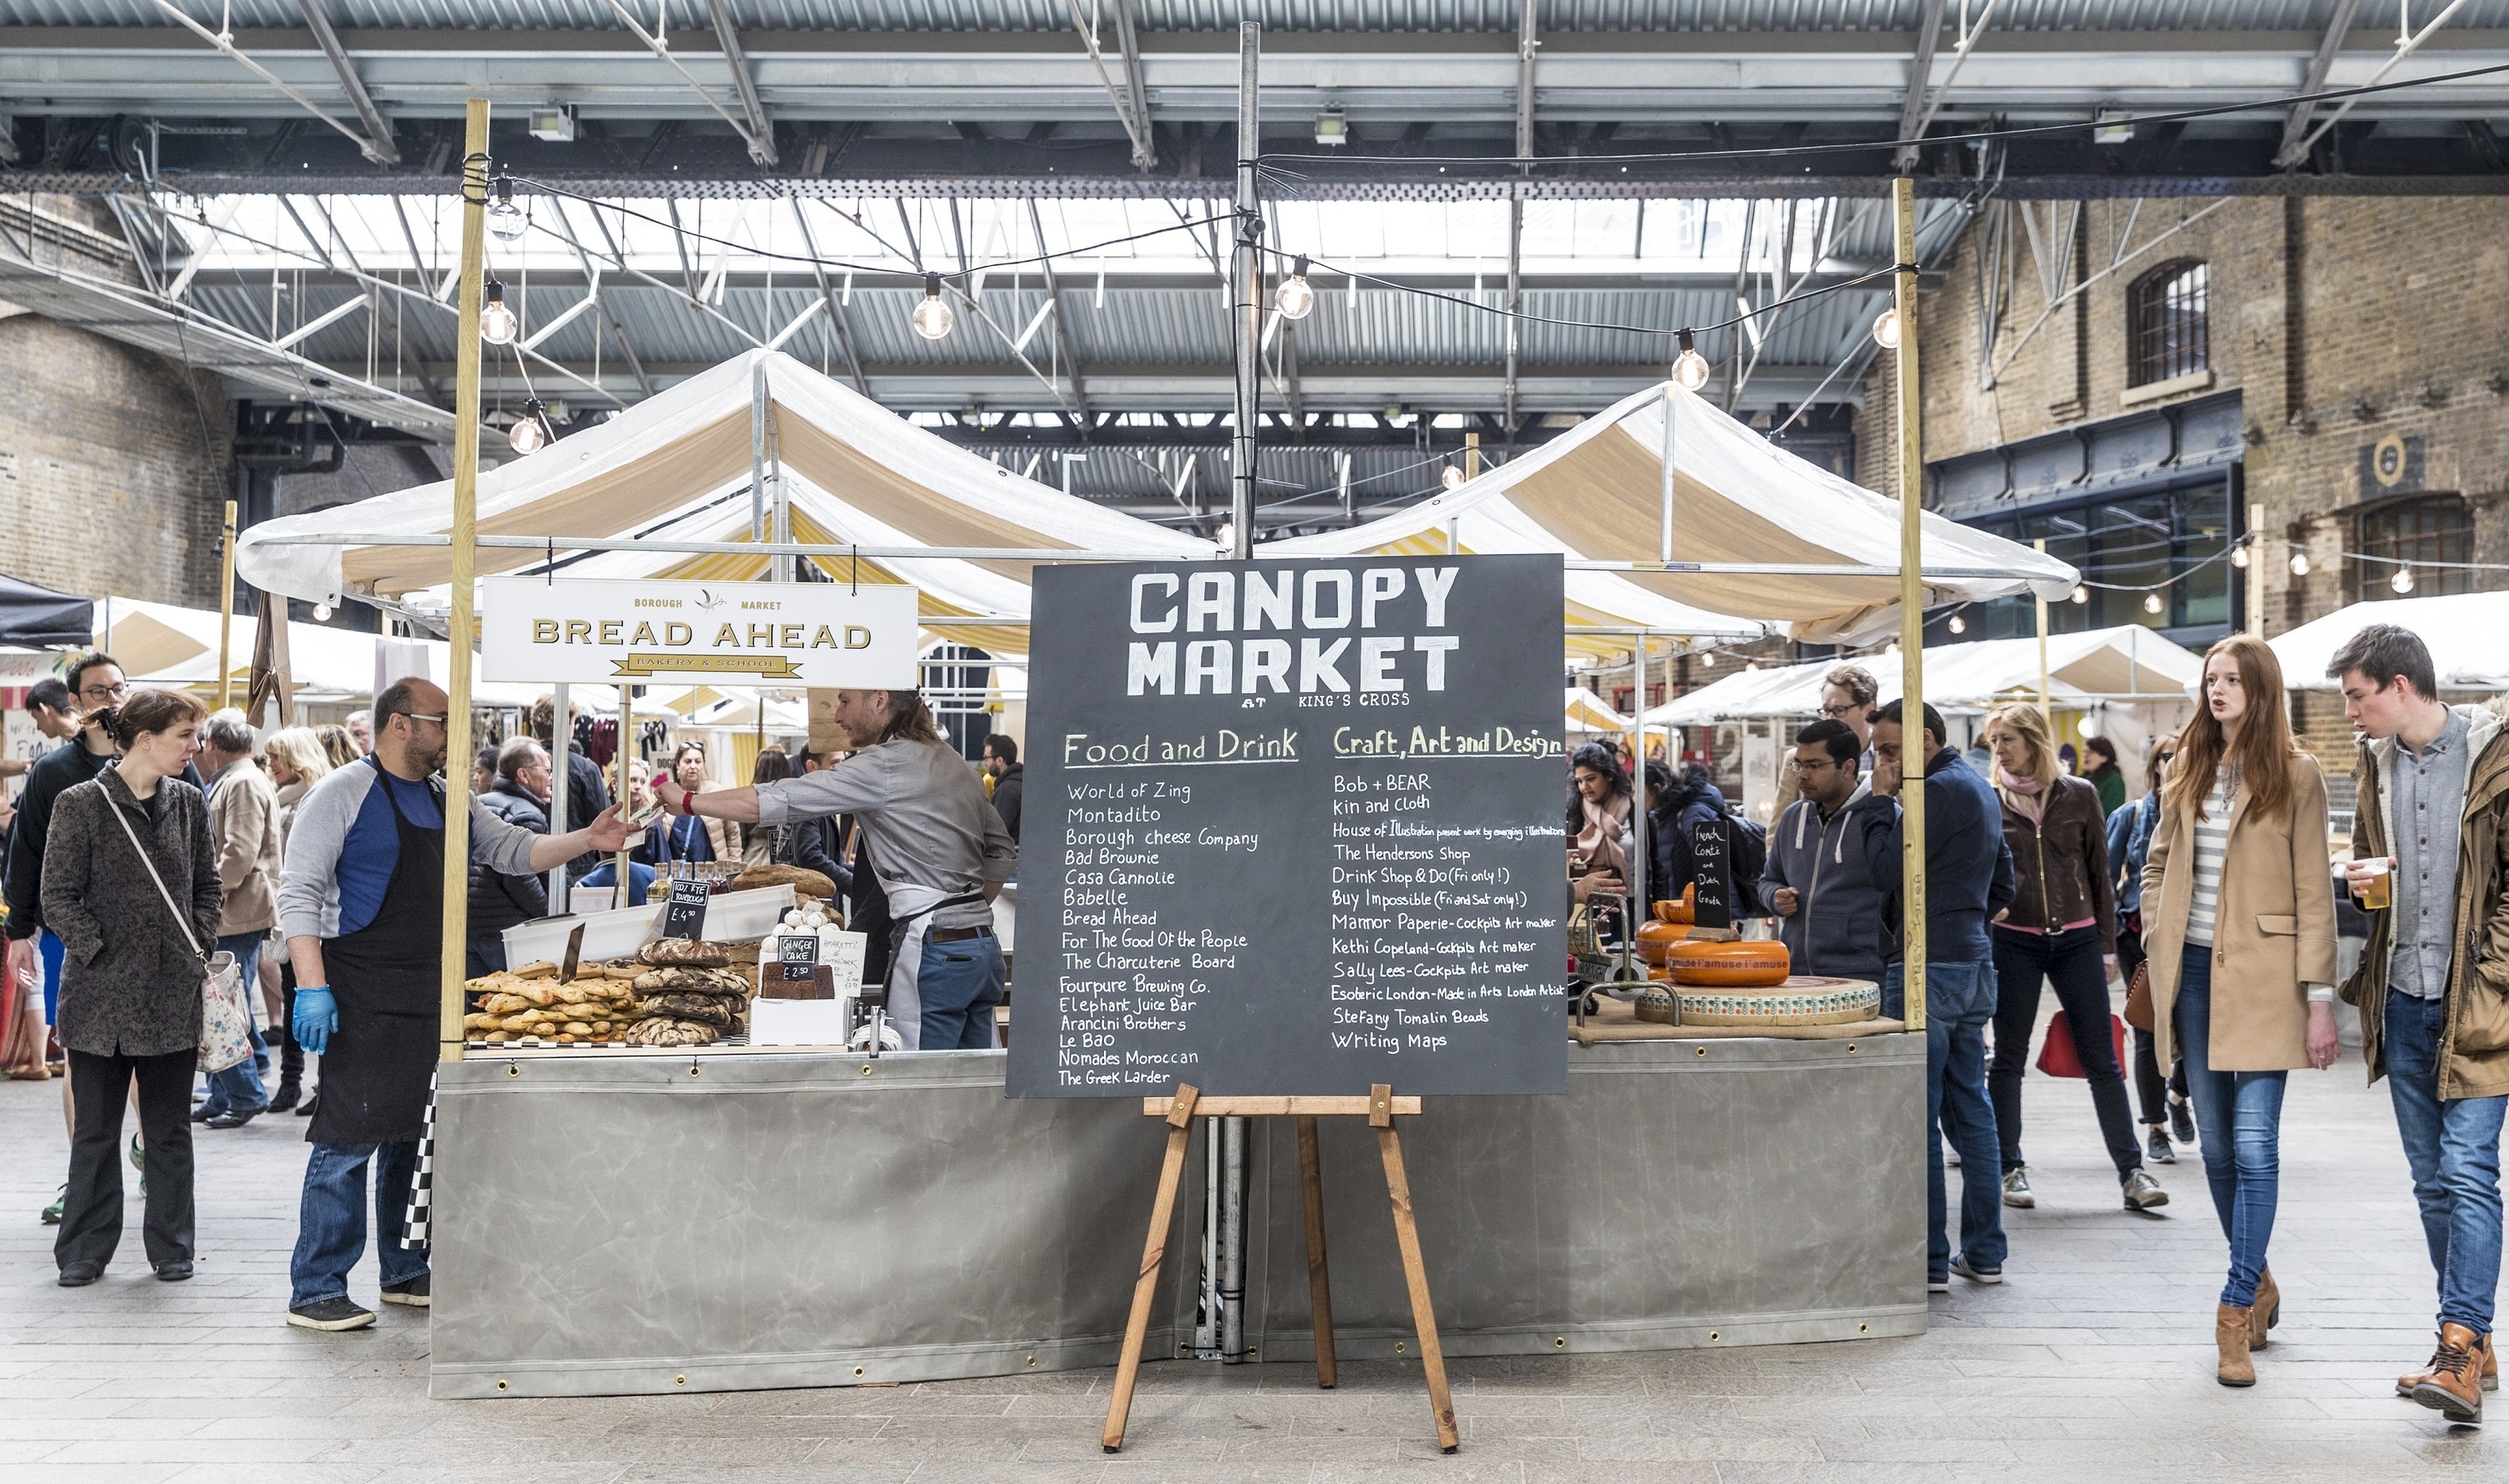 Canopy Market, King's Cross